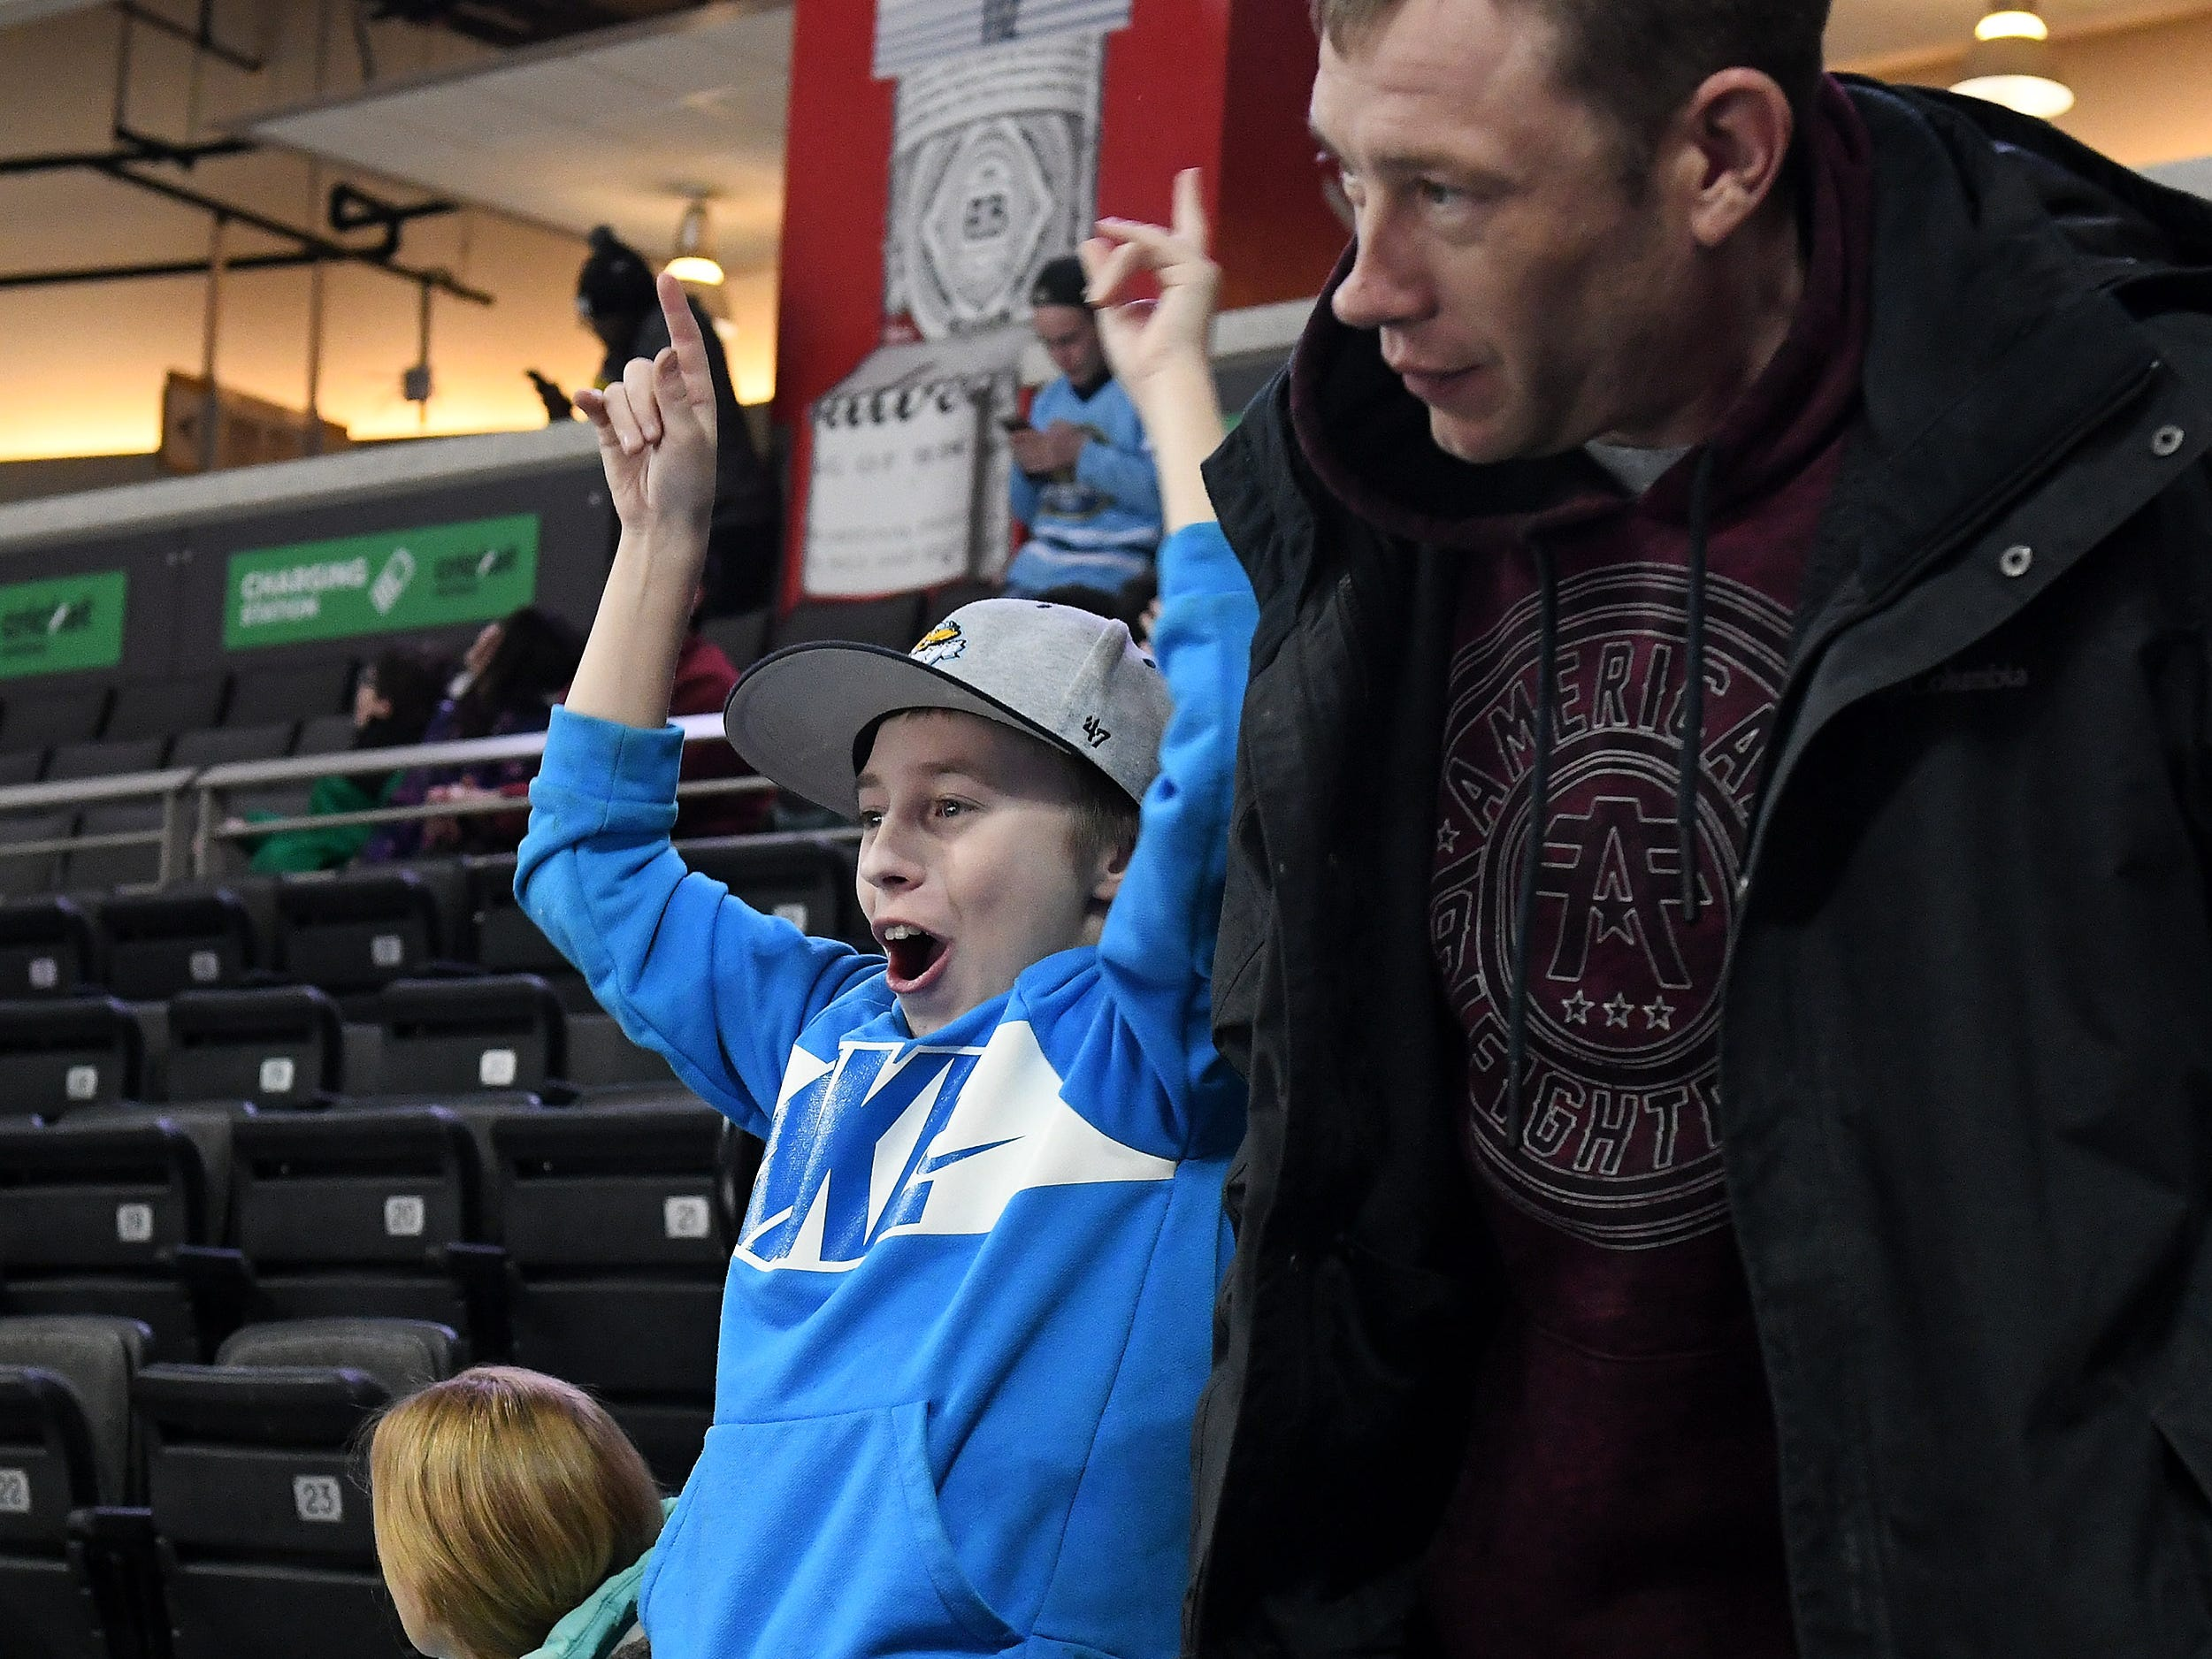 Ryan Wright, 12, of Toledo cheers next to his father, Jamey Wright, after the Walleye score a go-ahead goal in the third period.